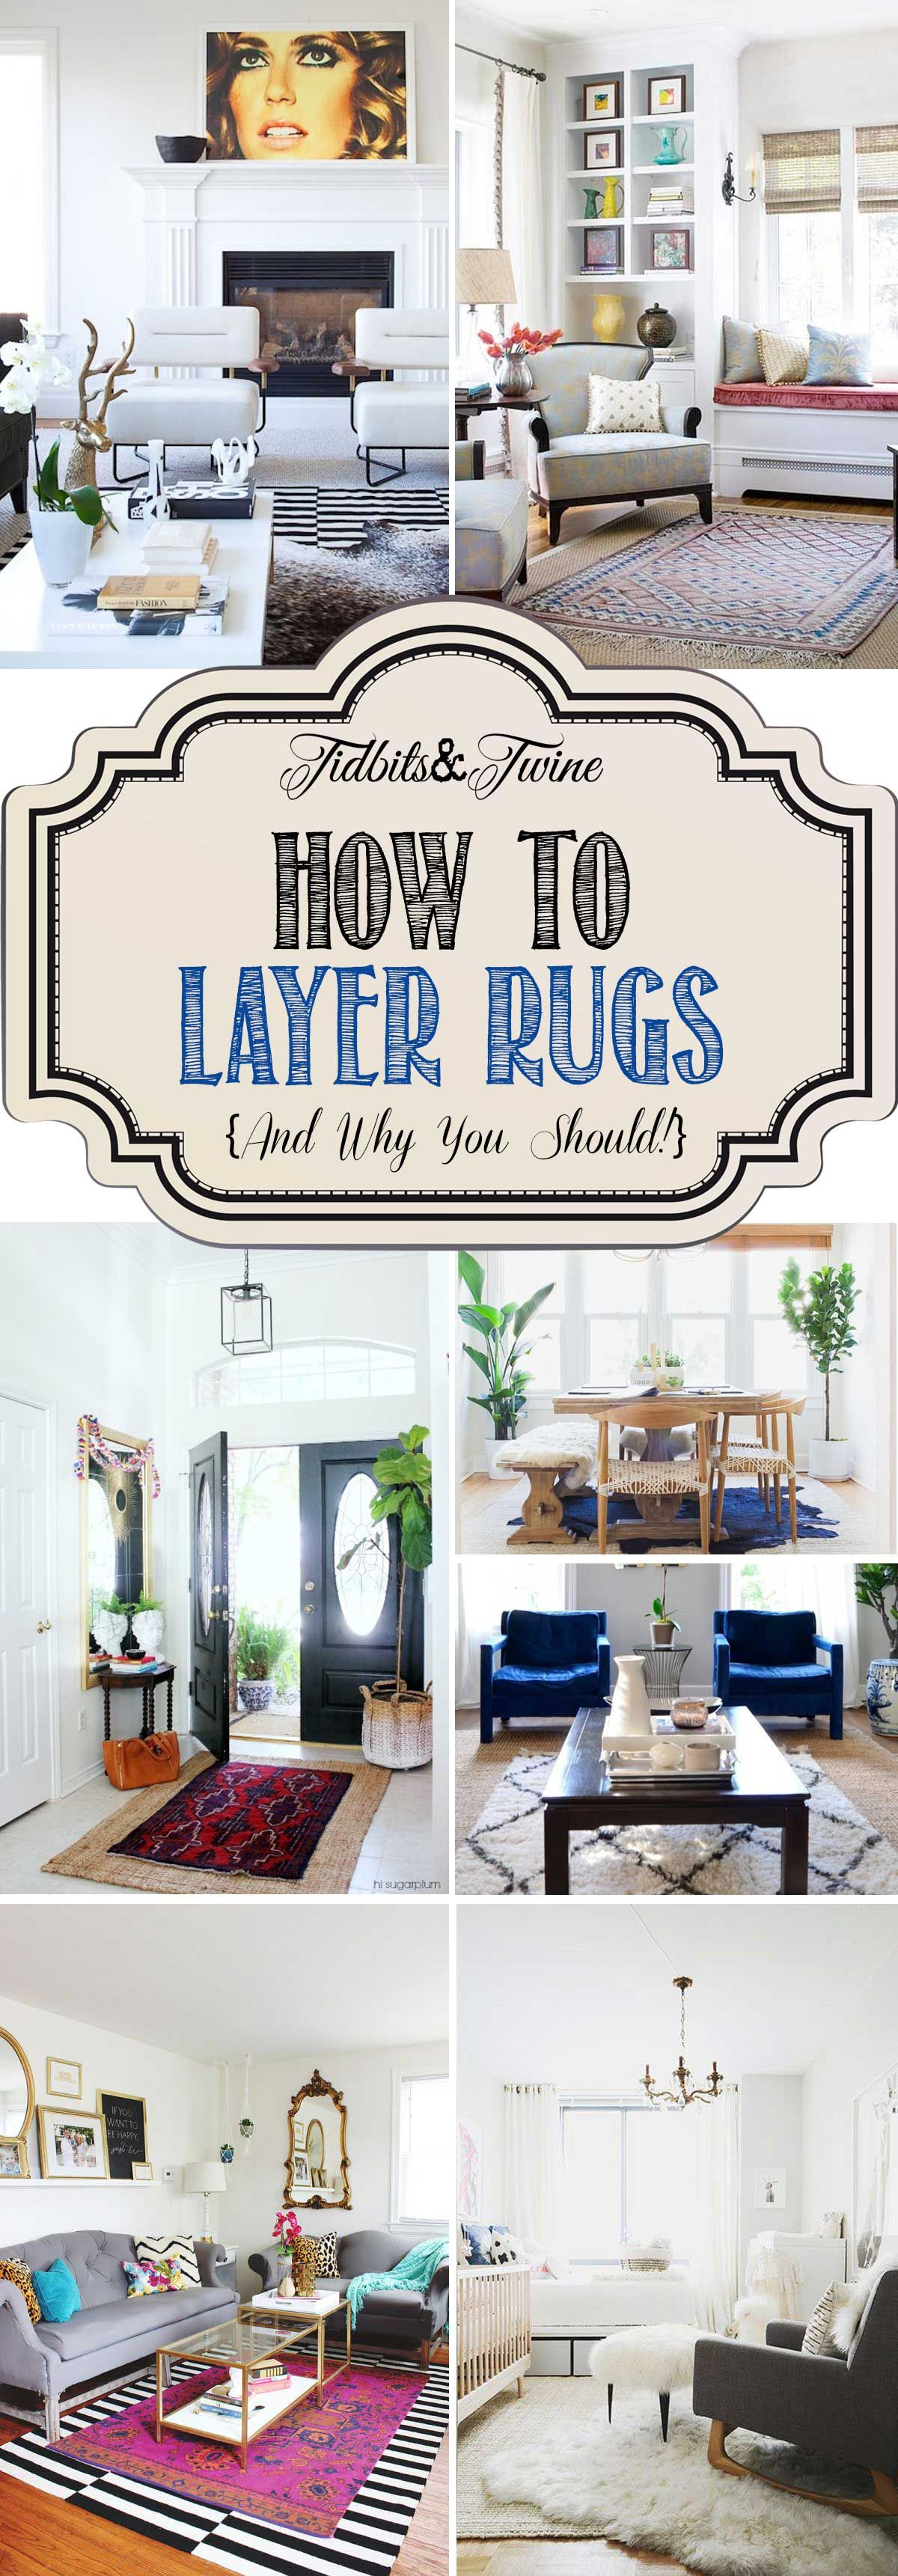 Get The Look Layered Rugs How To Layer Rugs Like A Pro Layered Rugs Living Room Layered Rugs Bedroom Home Decor